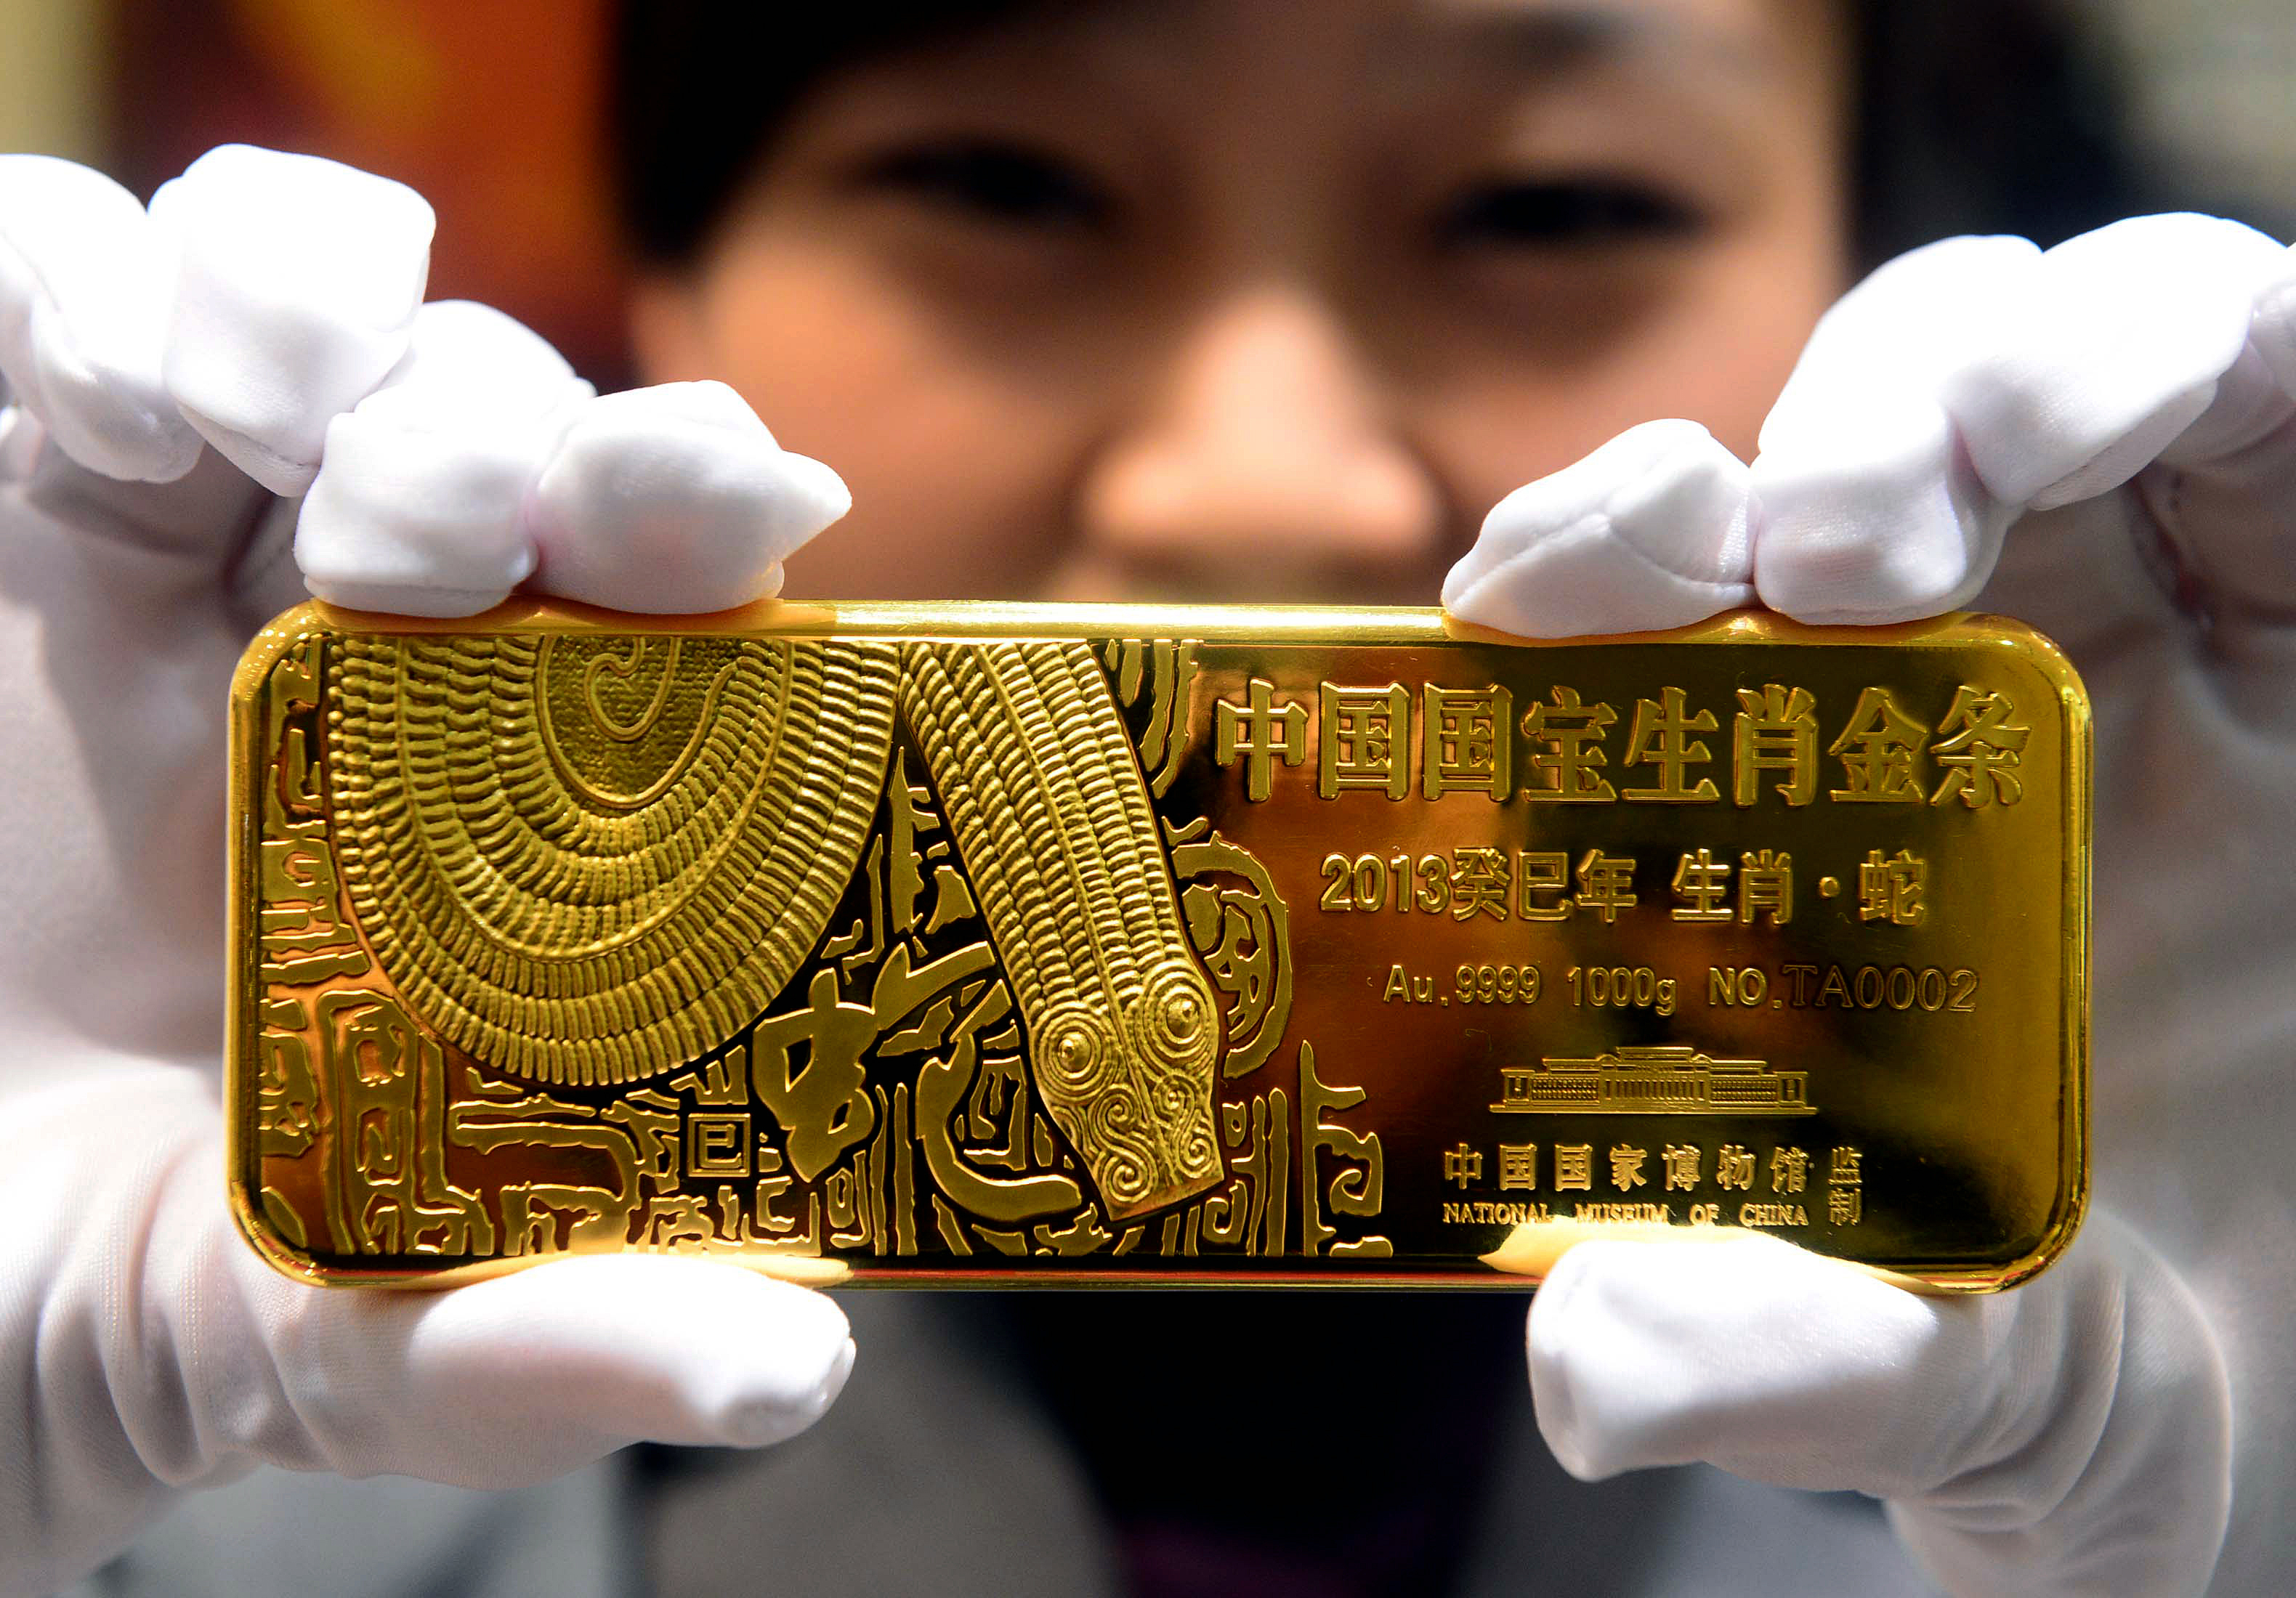 Chinese People Are Buying Gold, Taking Money Out of Banks and Stock Market